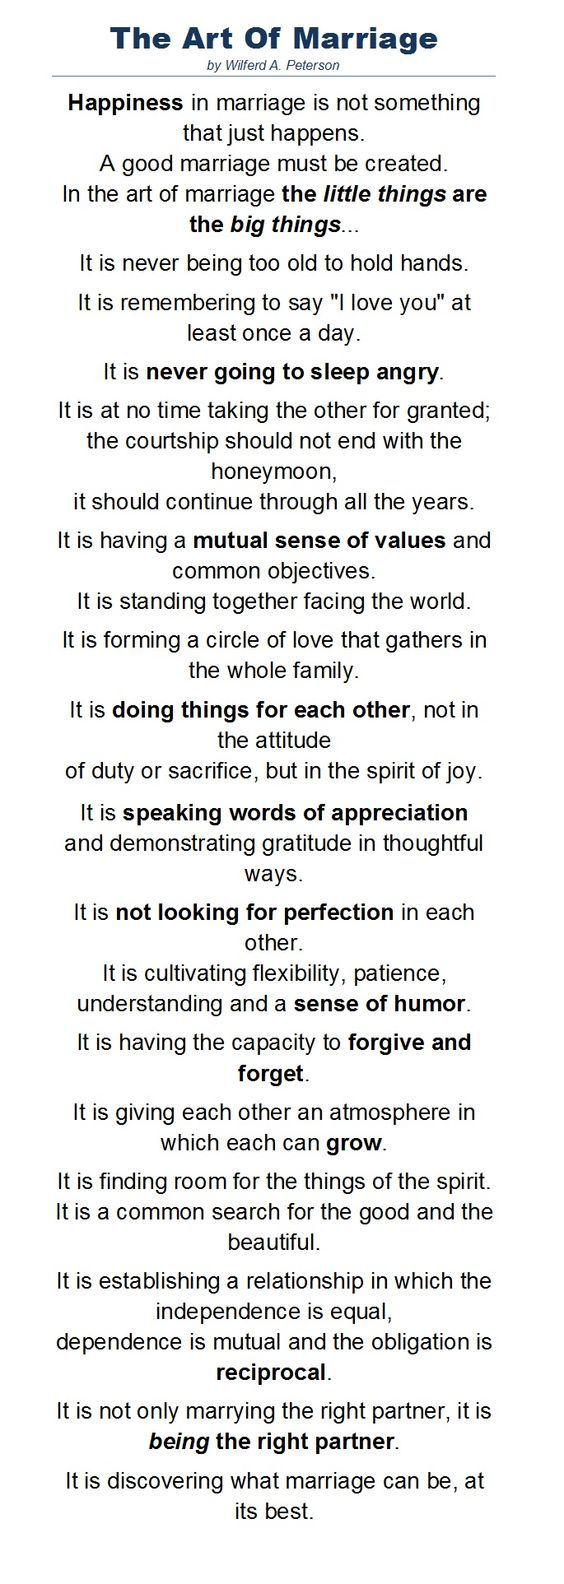 A wonderful poem by Wilferd A. Peterson about the art of marriage, read at Paul Newman's wedding to Joanne Woodward.: